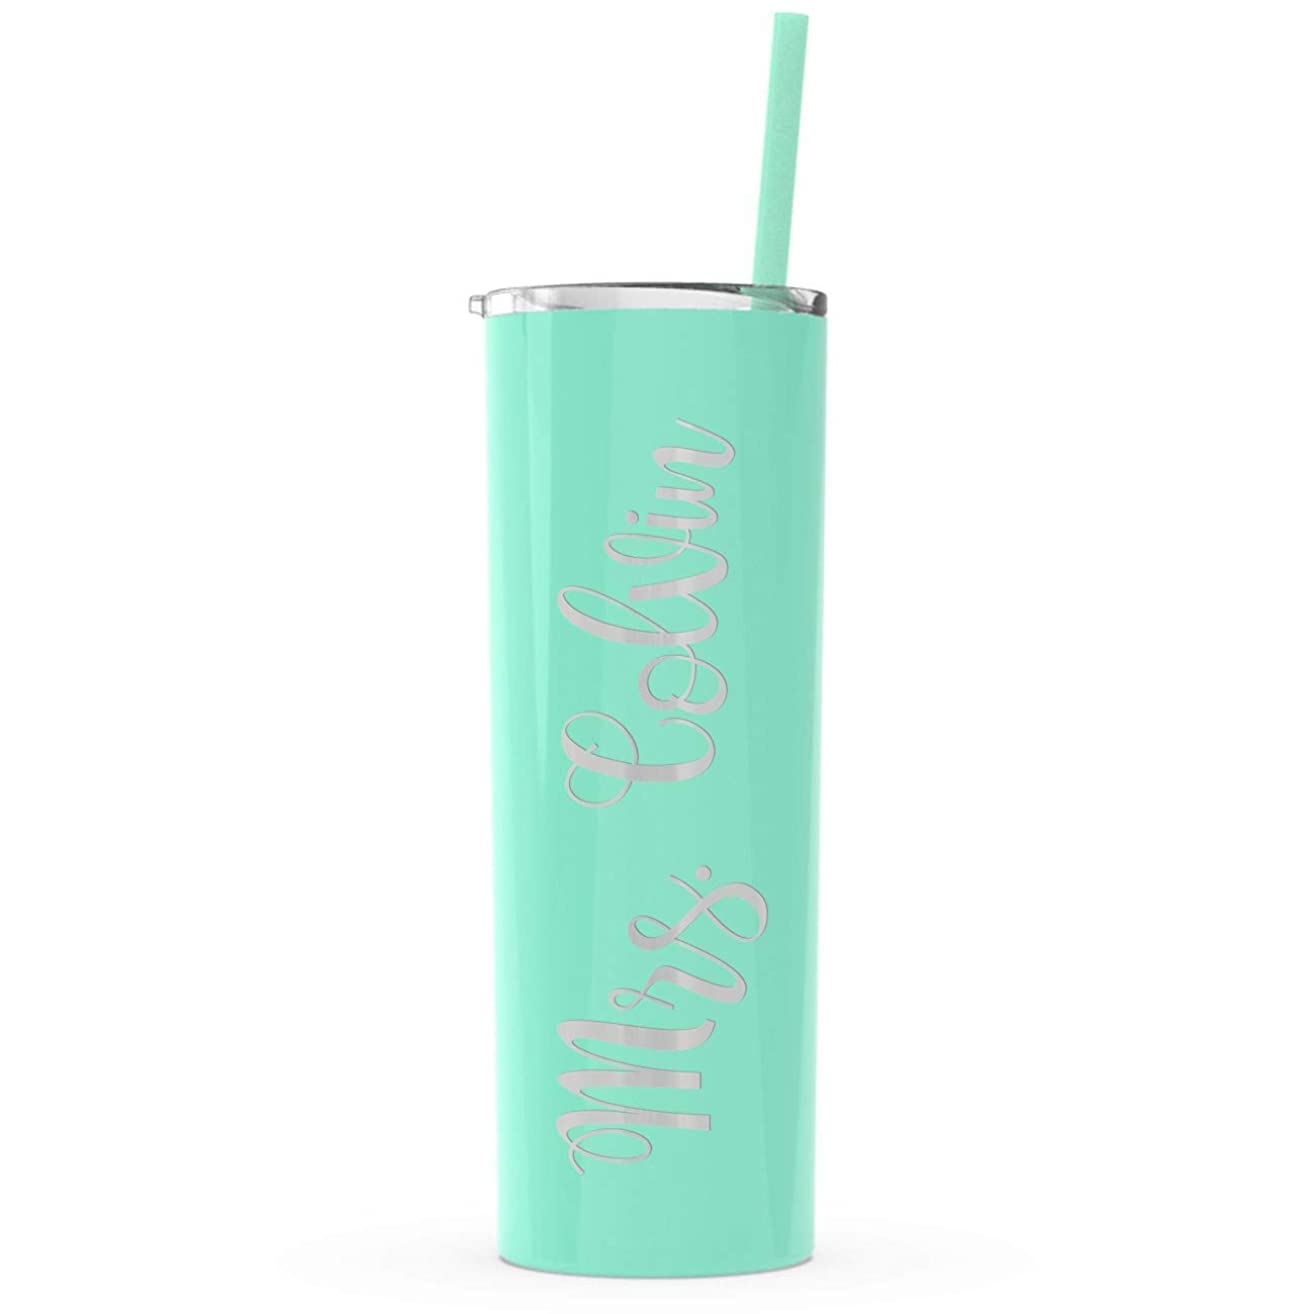 Teacher gift, Personalized Name, Tumbler Water Bottle, 20 oz, Engraved, Color Options